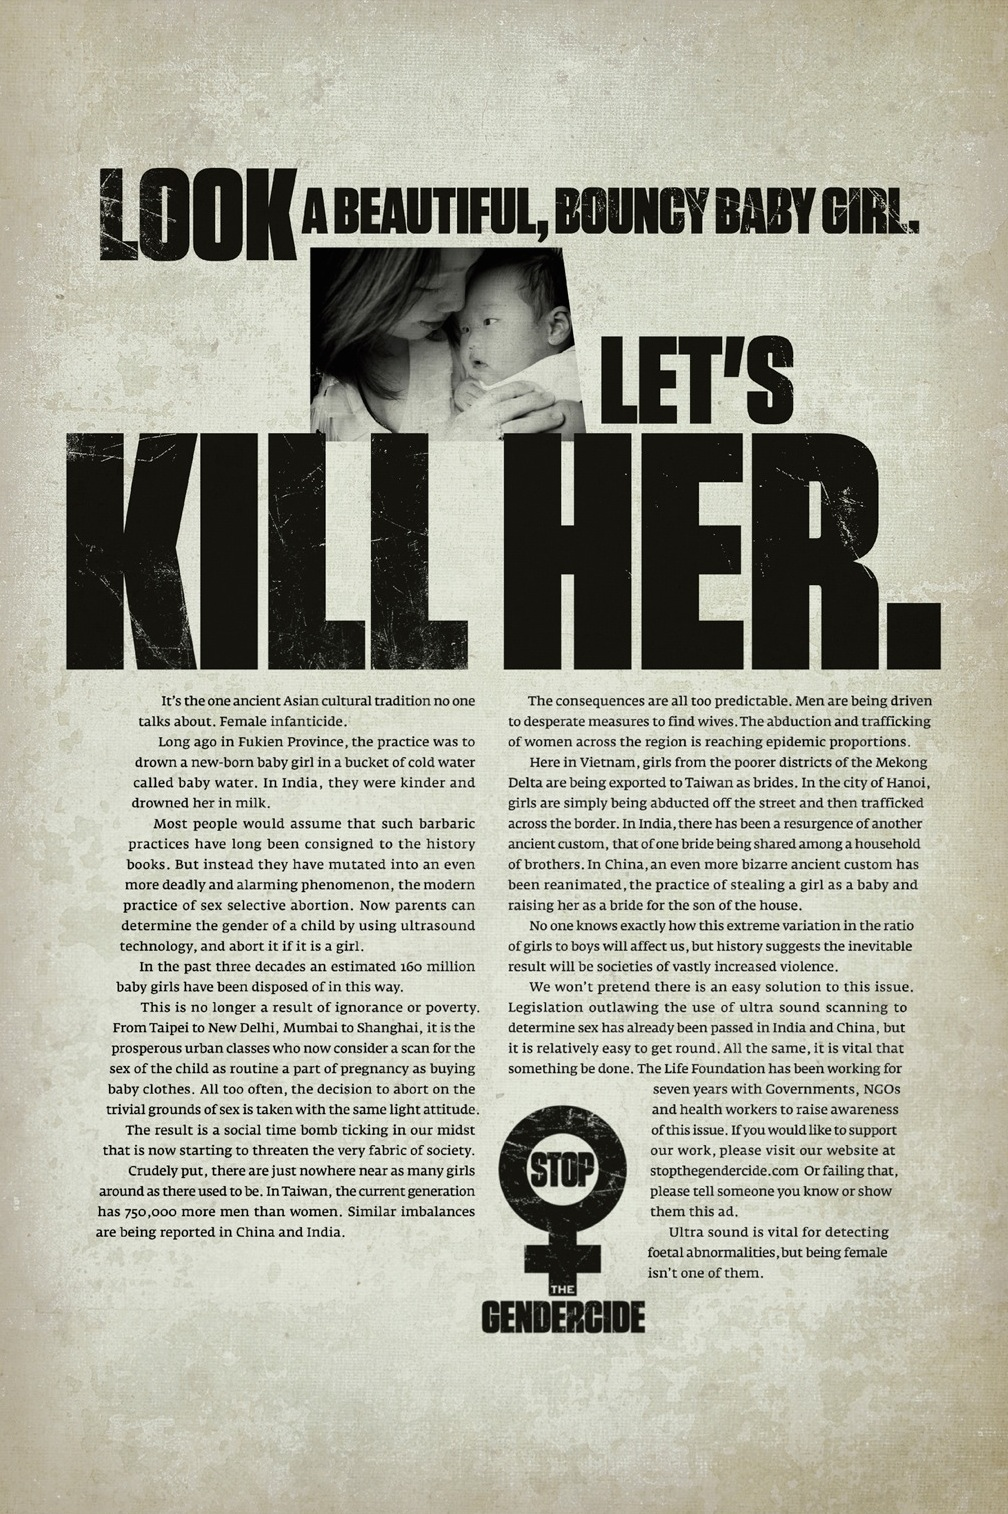 The Life Foundation Print Advert By Ogilvy Kill Her Ads